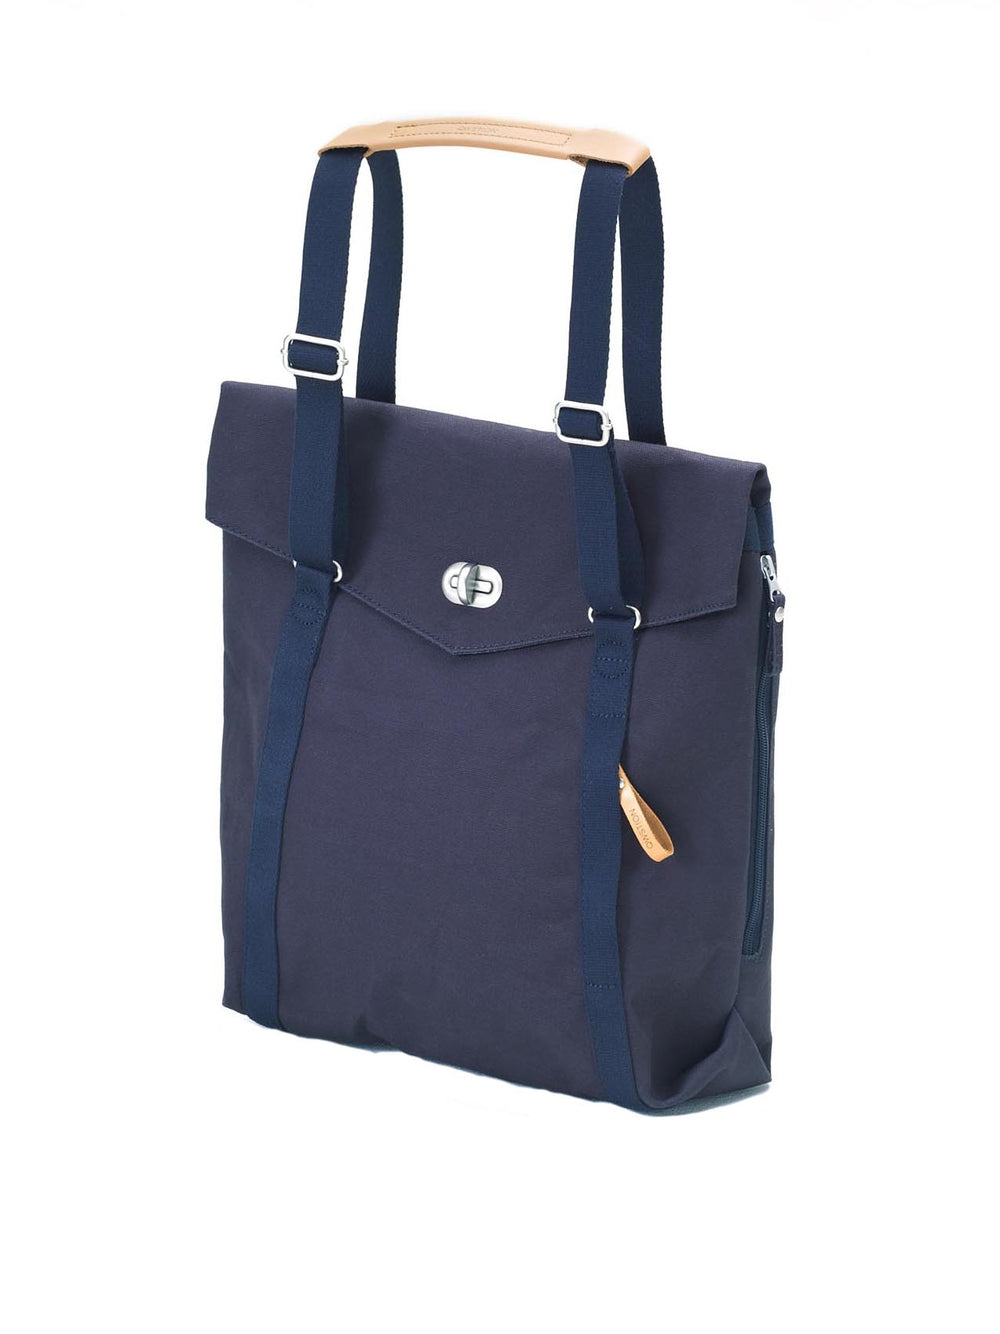 Qwstion Tote Adjustable straps and Vegetable tanned leather handle